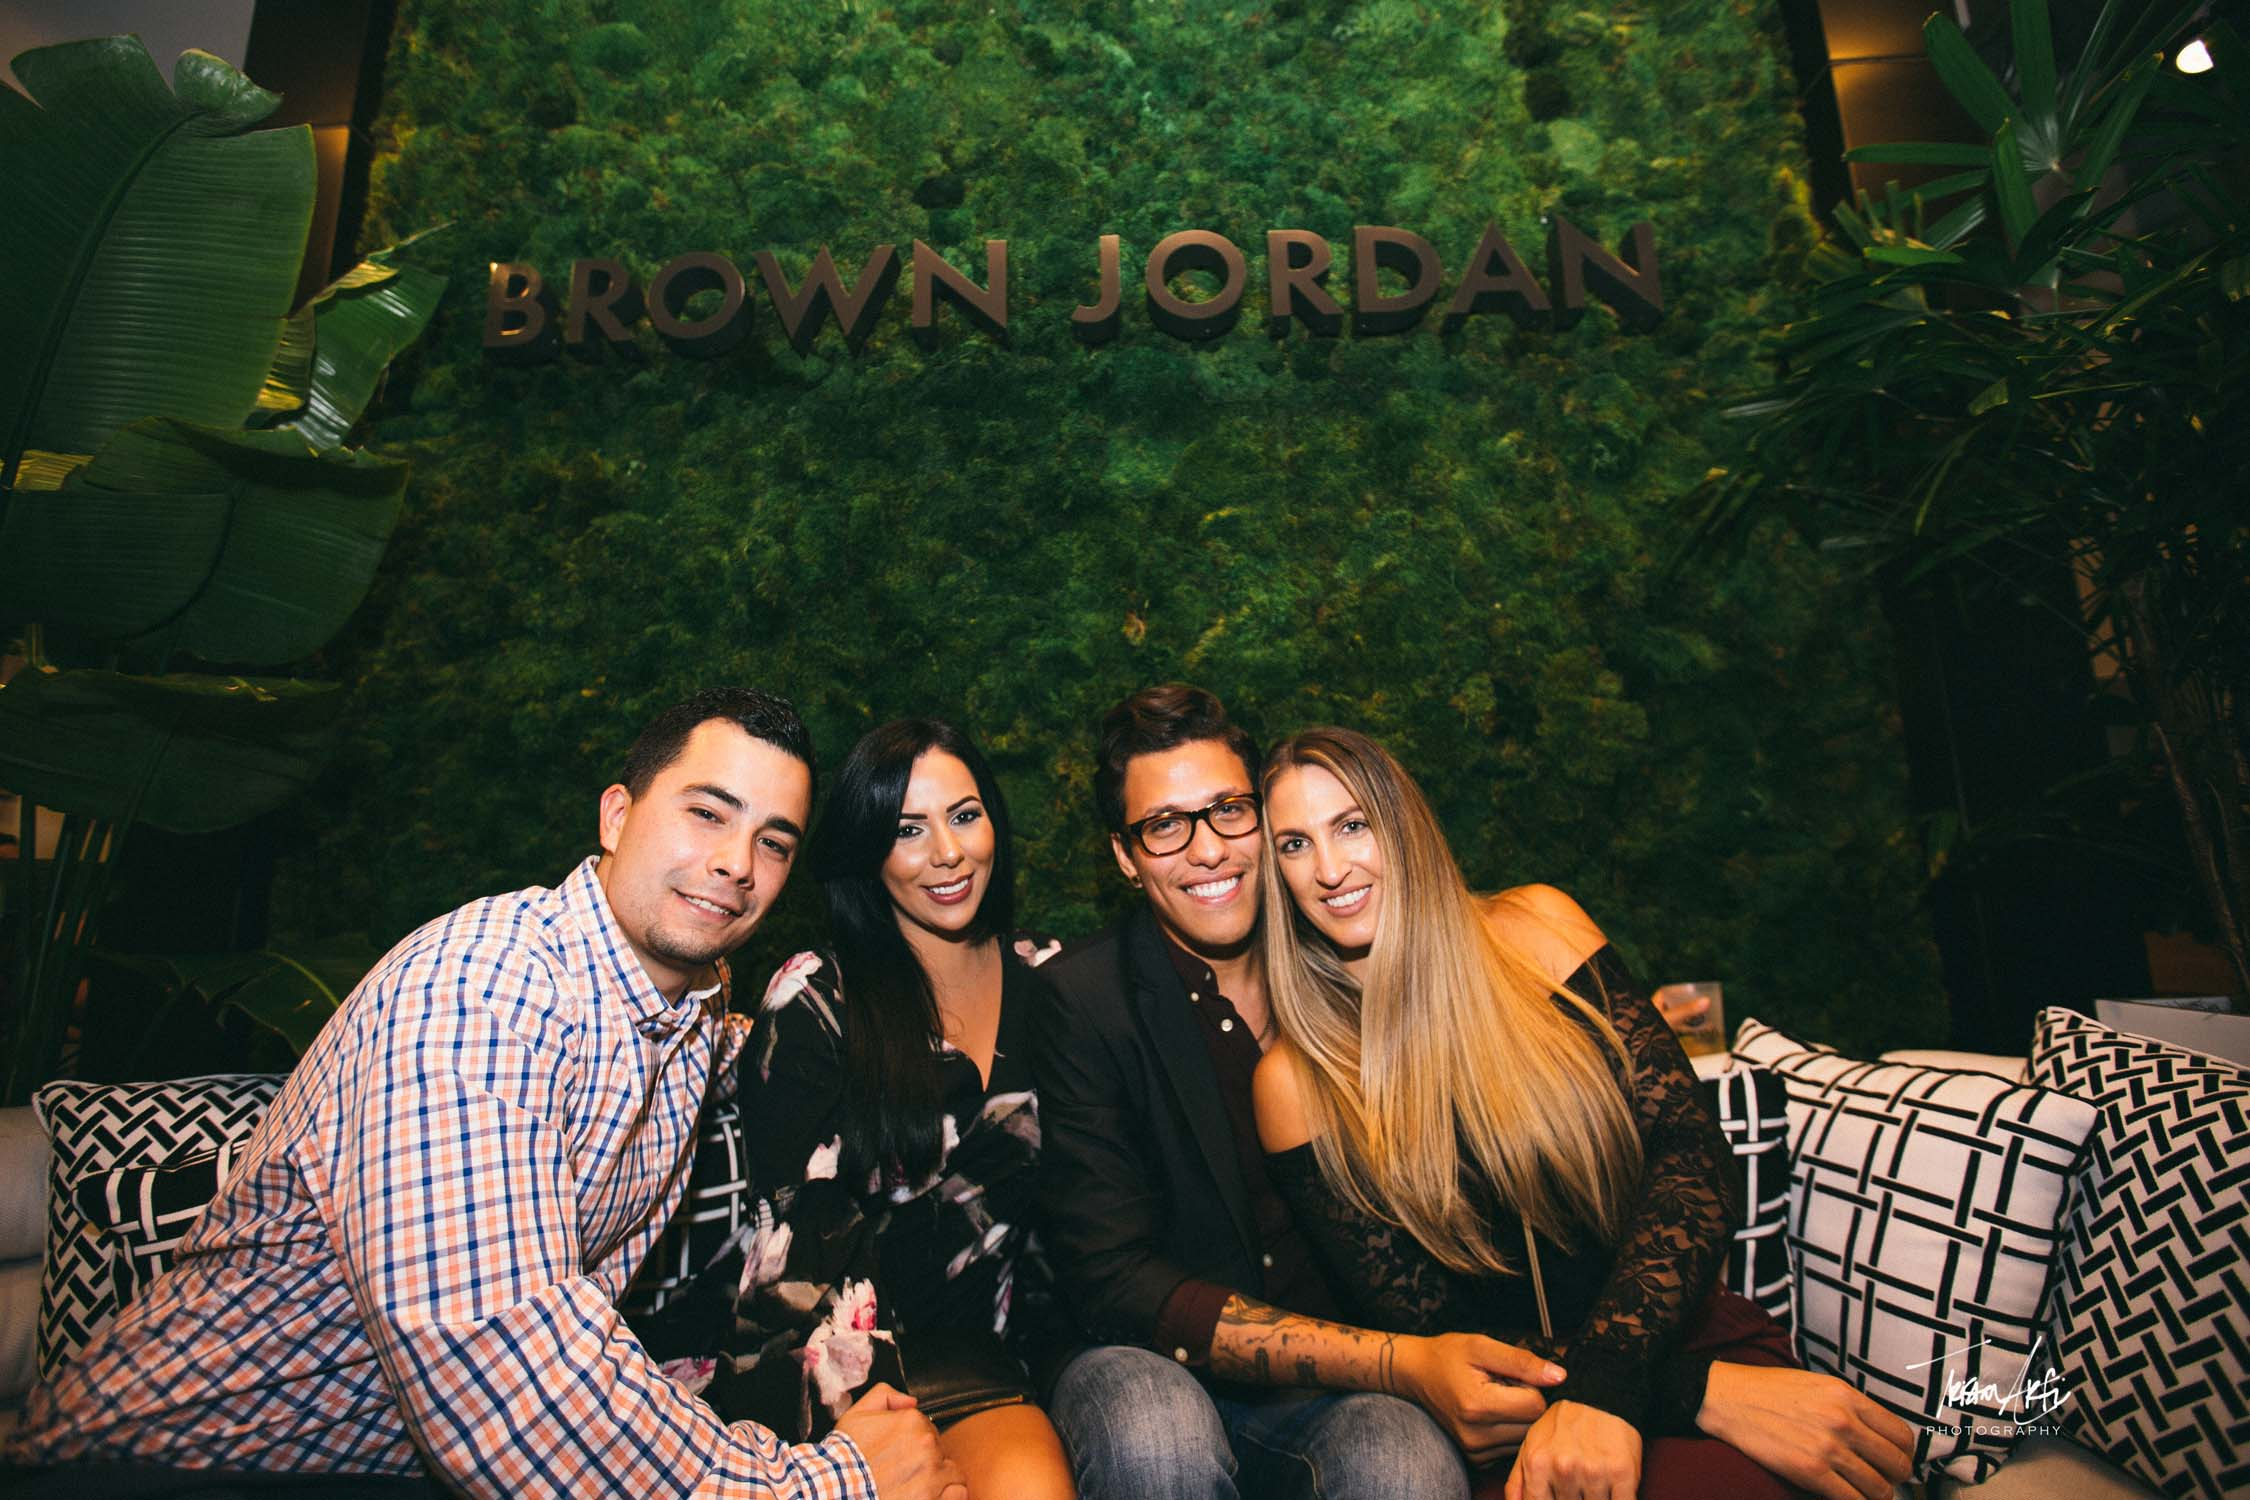 Event BROWN JORDAN-181.JPG